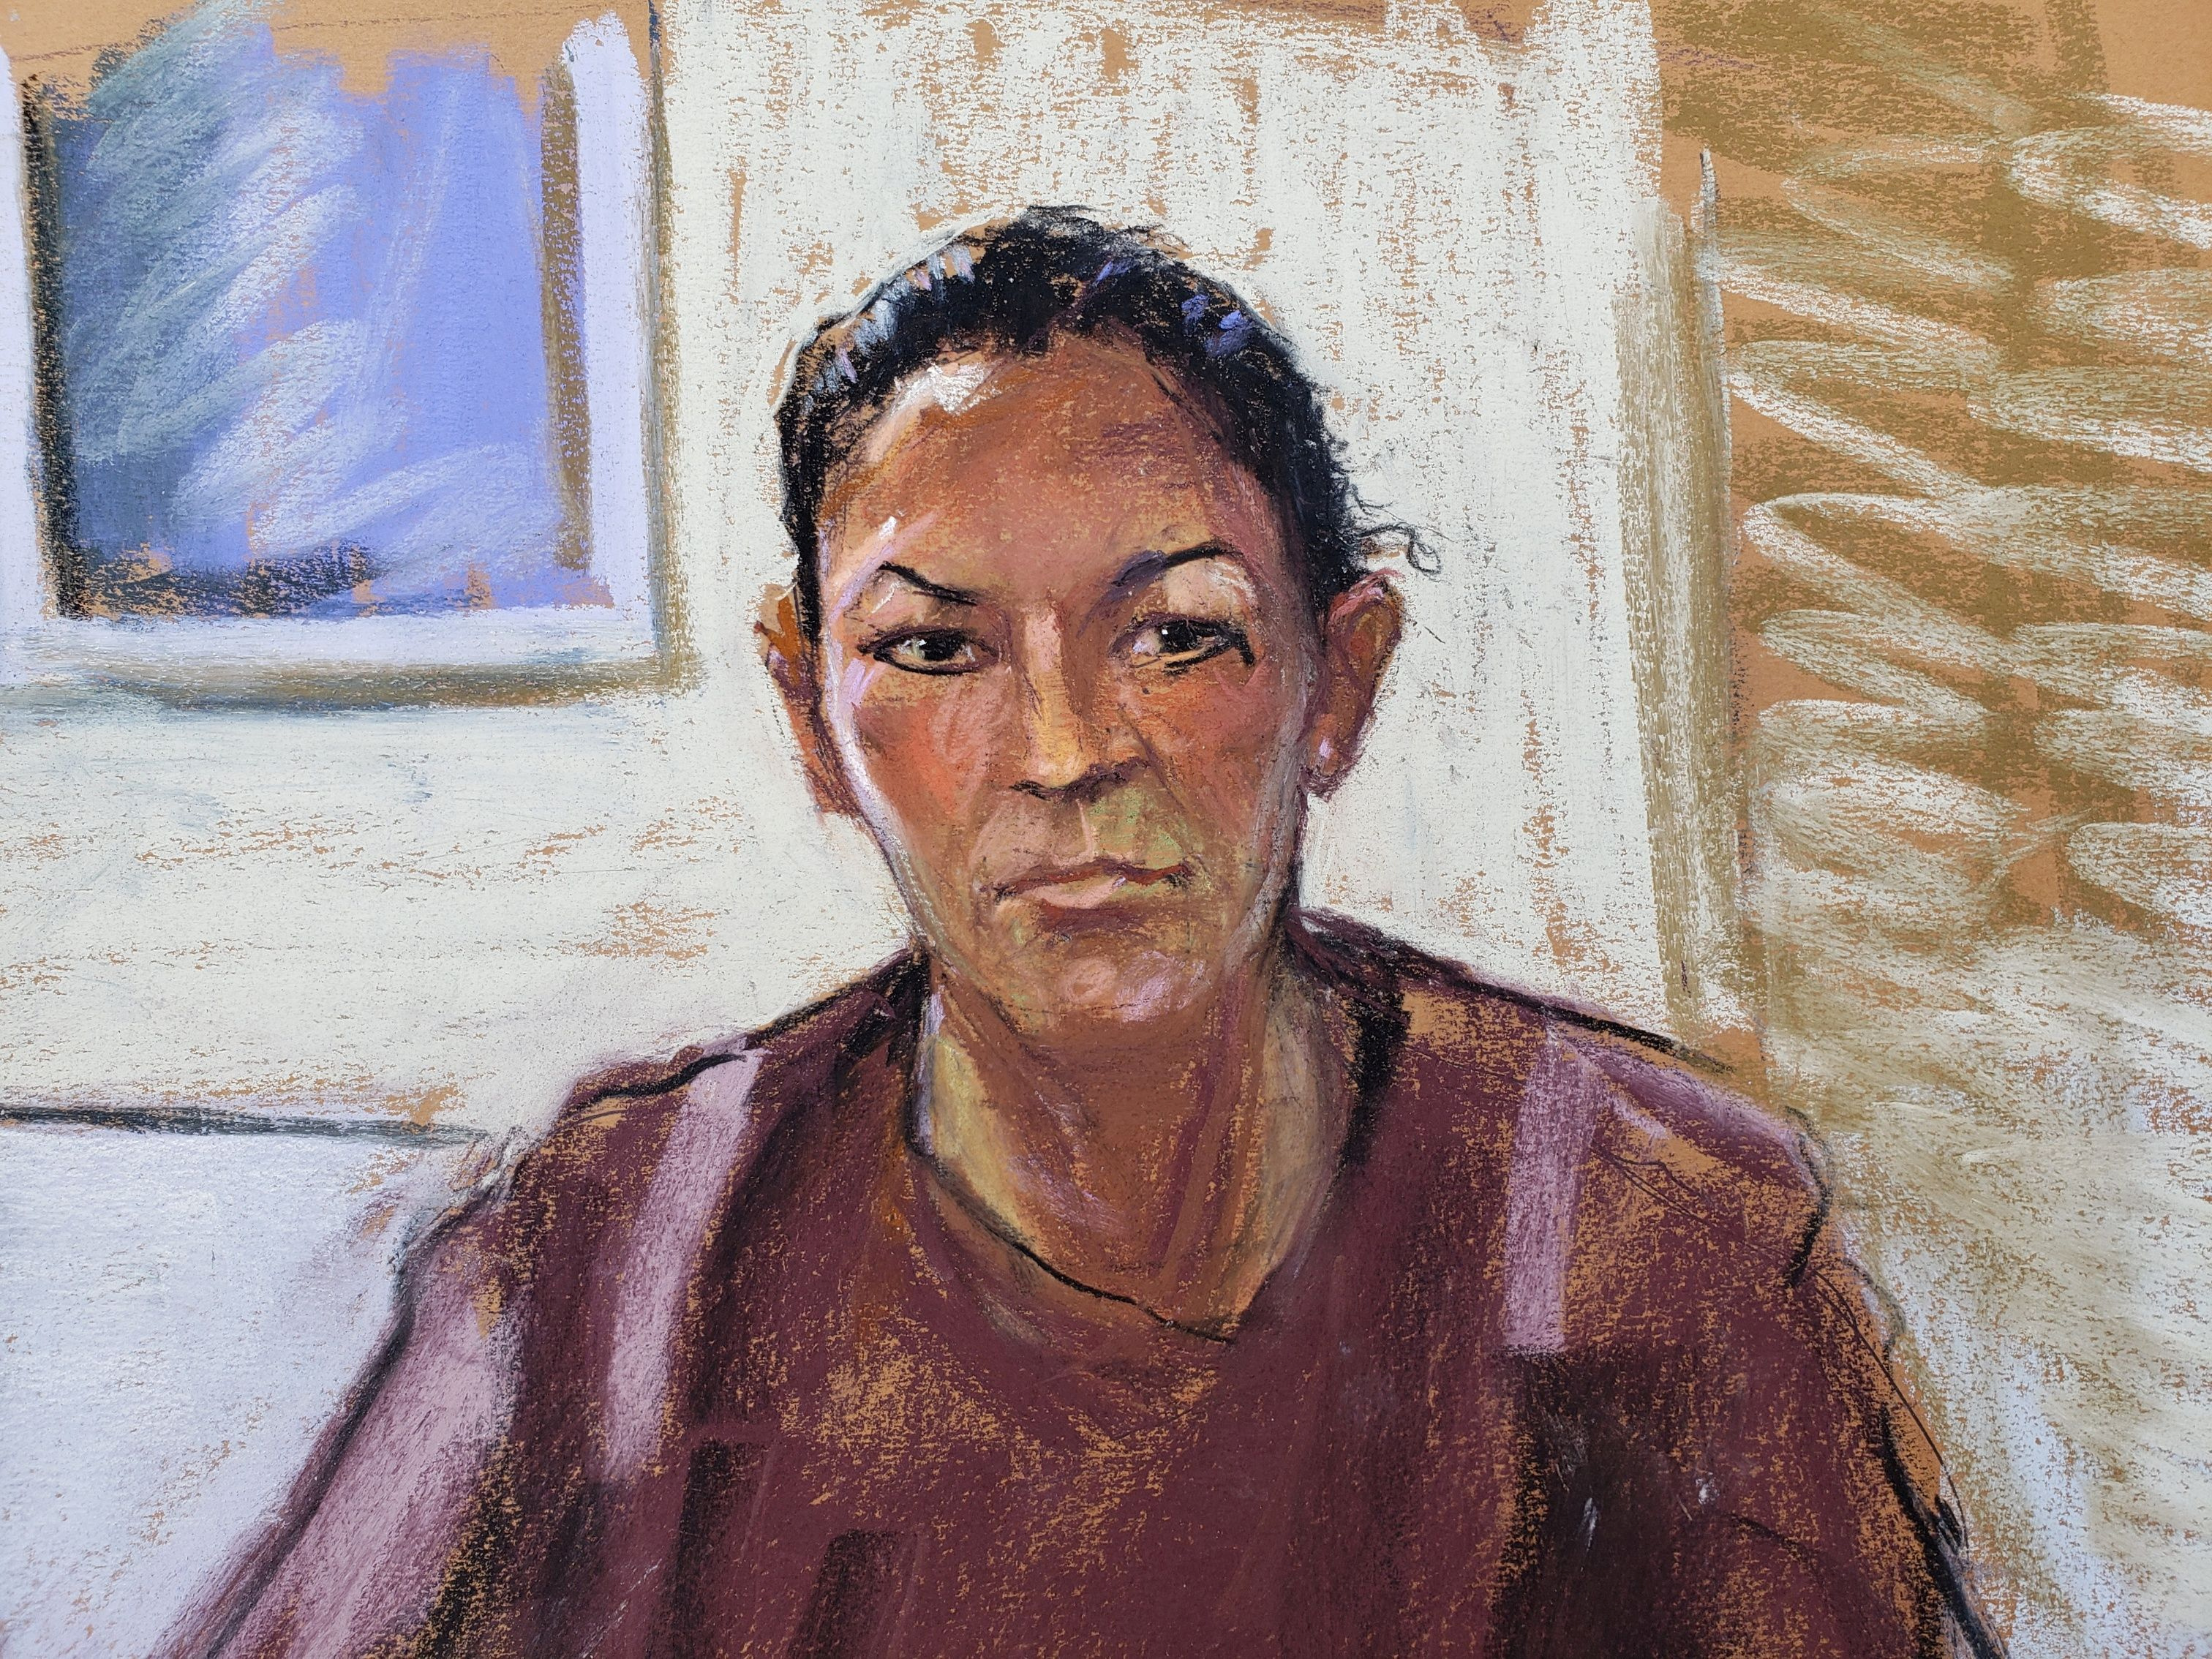 Sketch of Ghislaine Maxwell appearing via video link during her arraignment hearing where she was denied bail